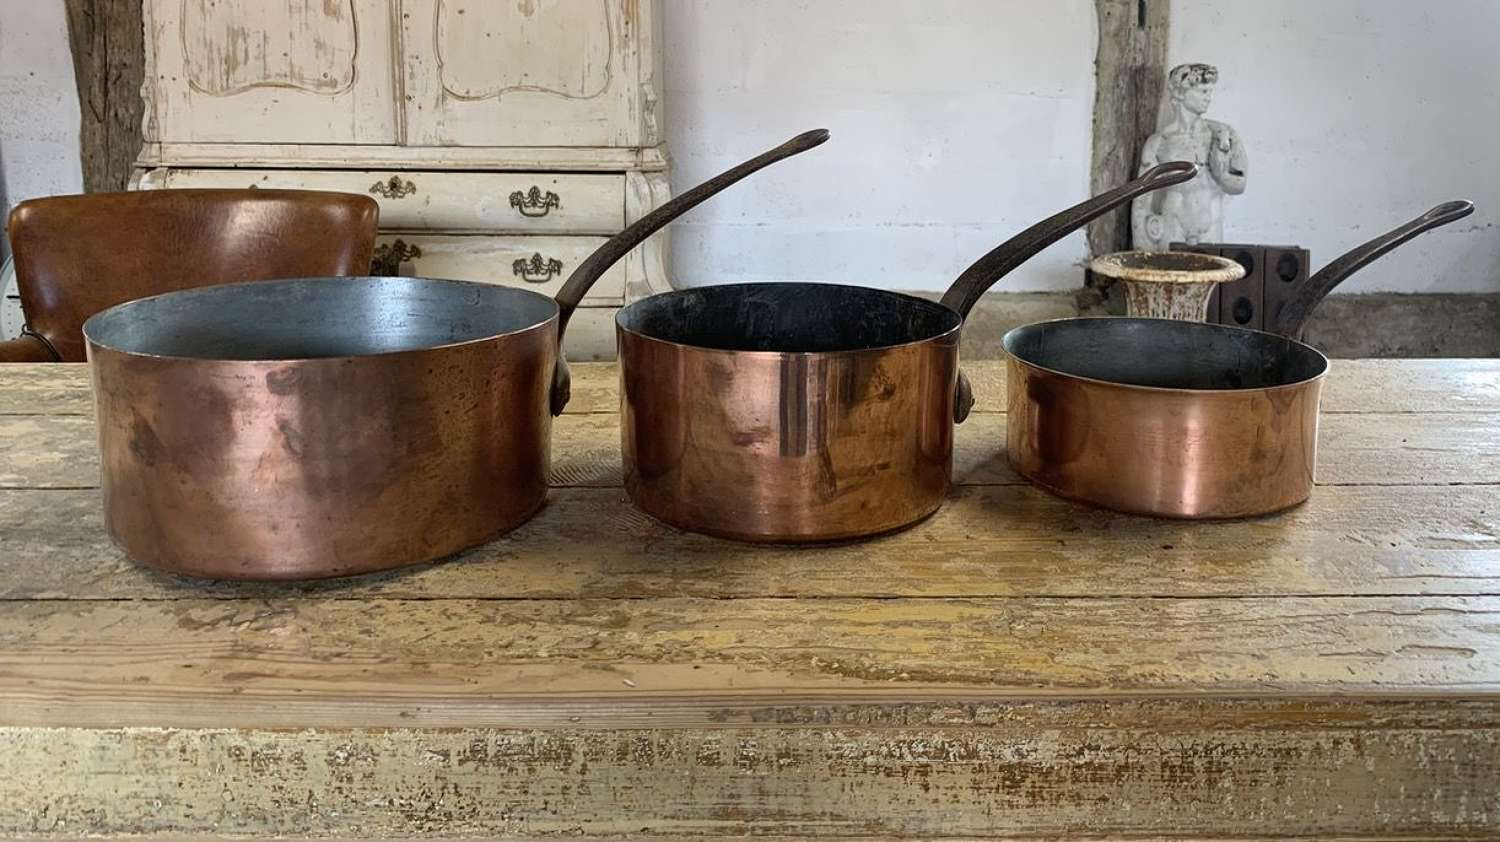 19TH CENTURY FRENCH COPPER SAUCEPANS